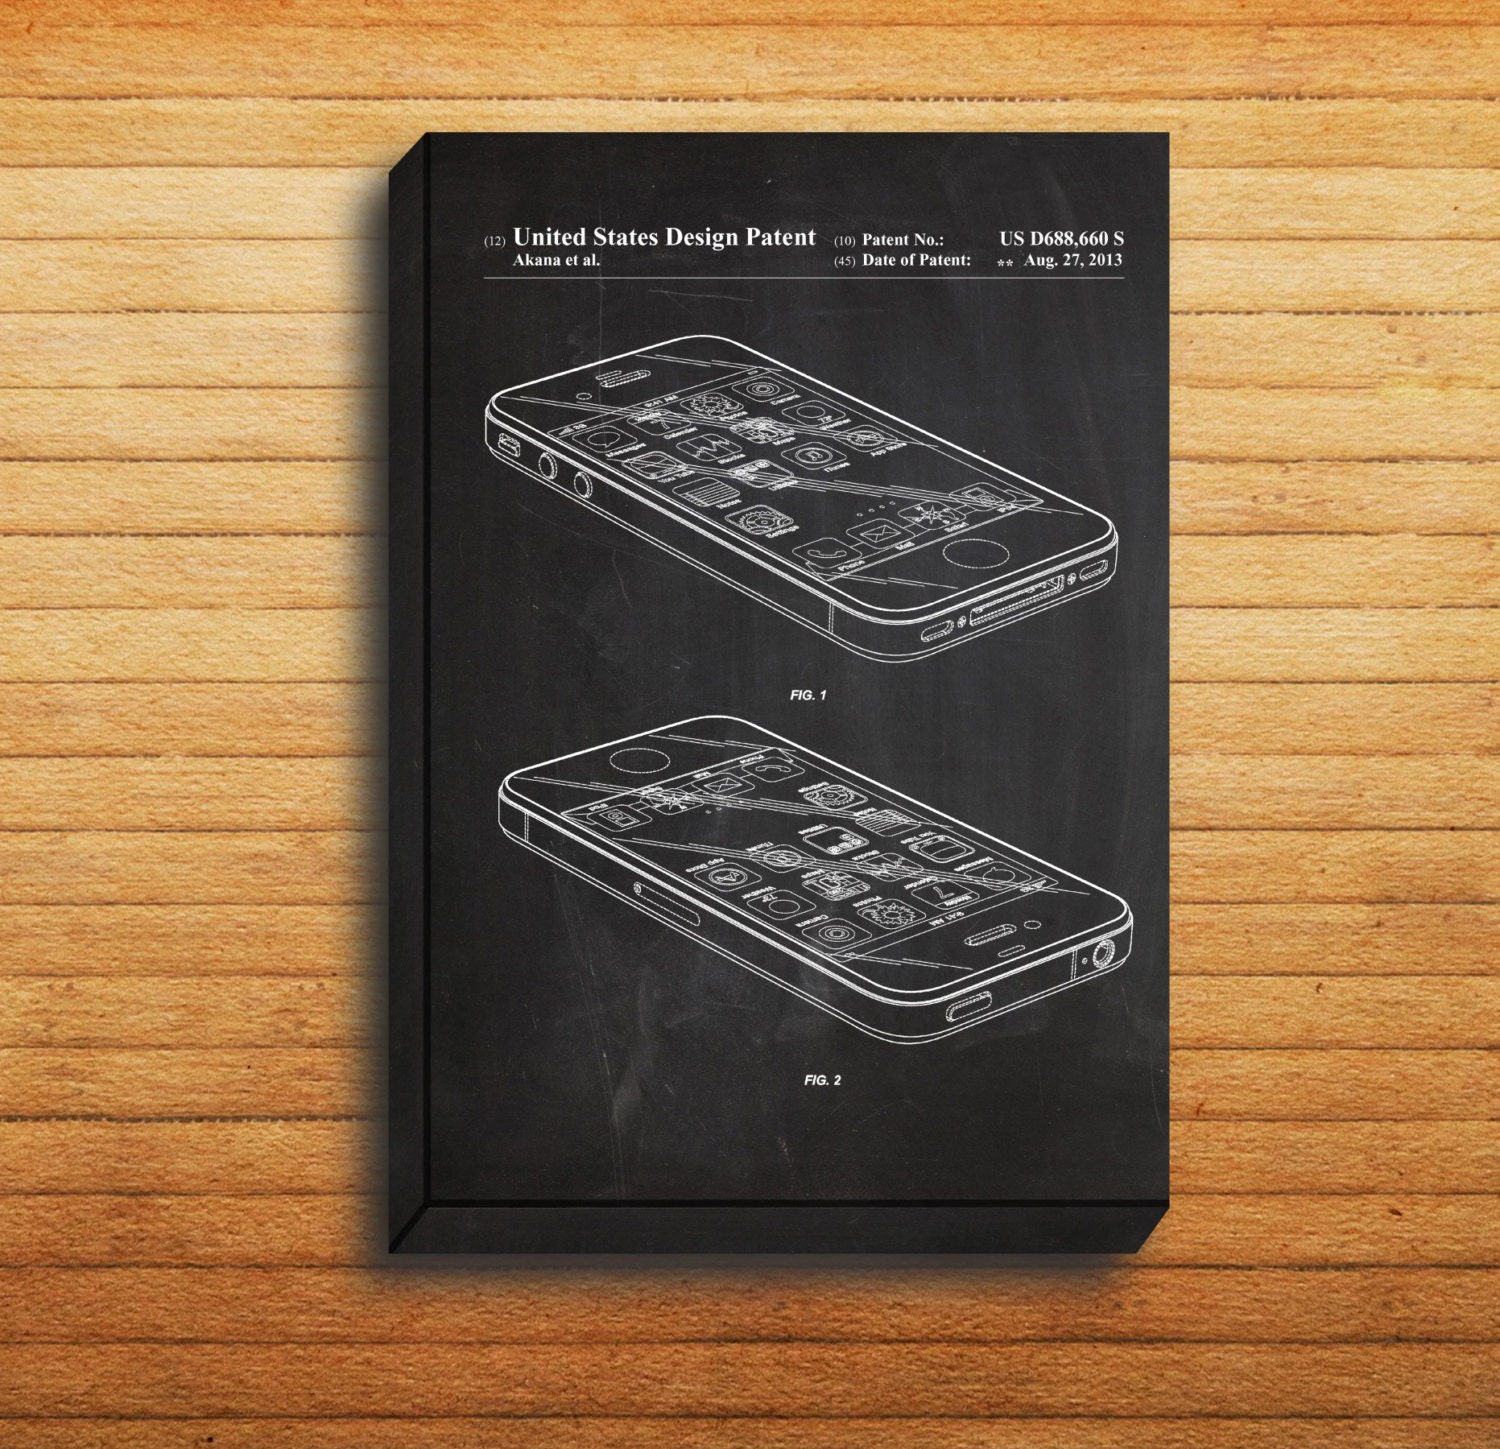 Canvas iphone ios software patent iphone ios software poster canvas iphone ios software patent iphone ios software poster iphone blueprint iphone print iphone art iphone decor malvernweather Image collections